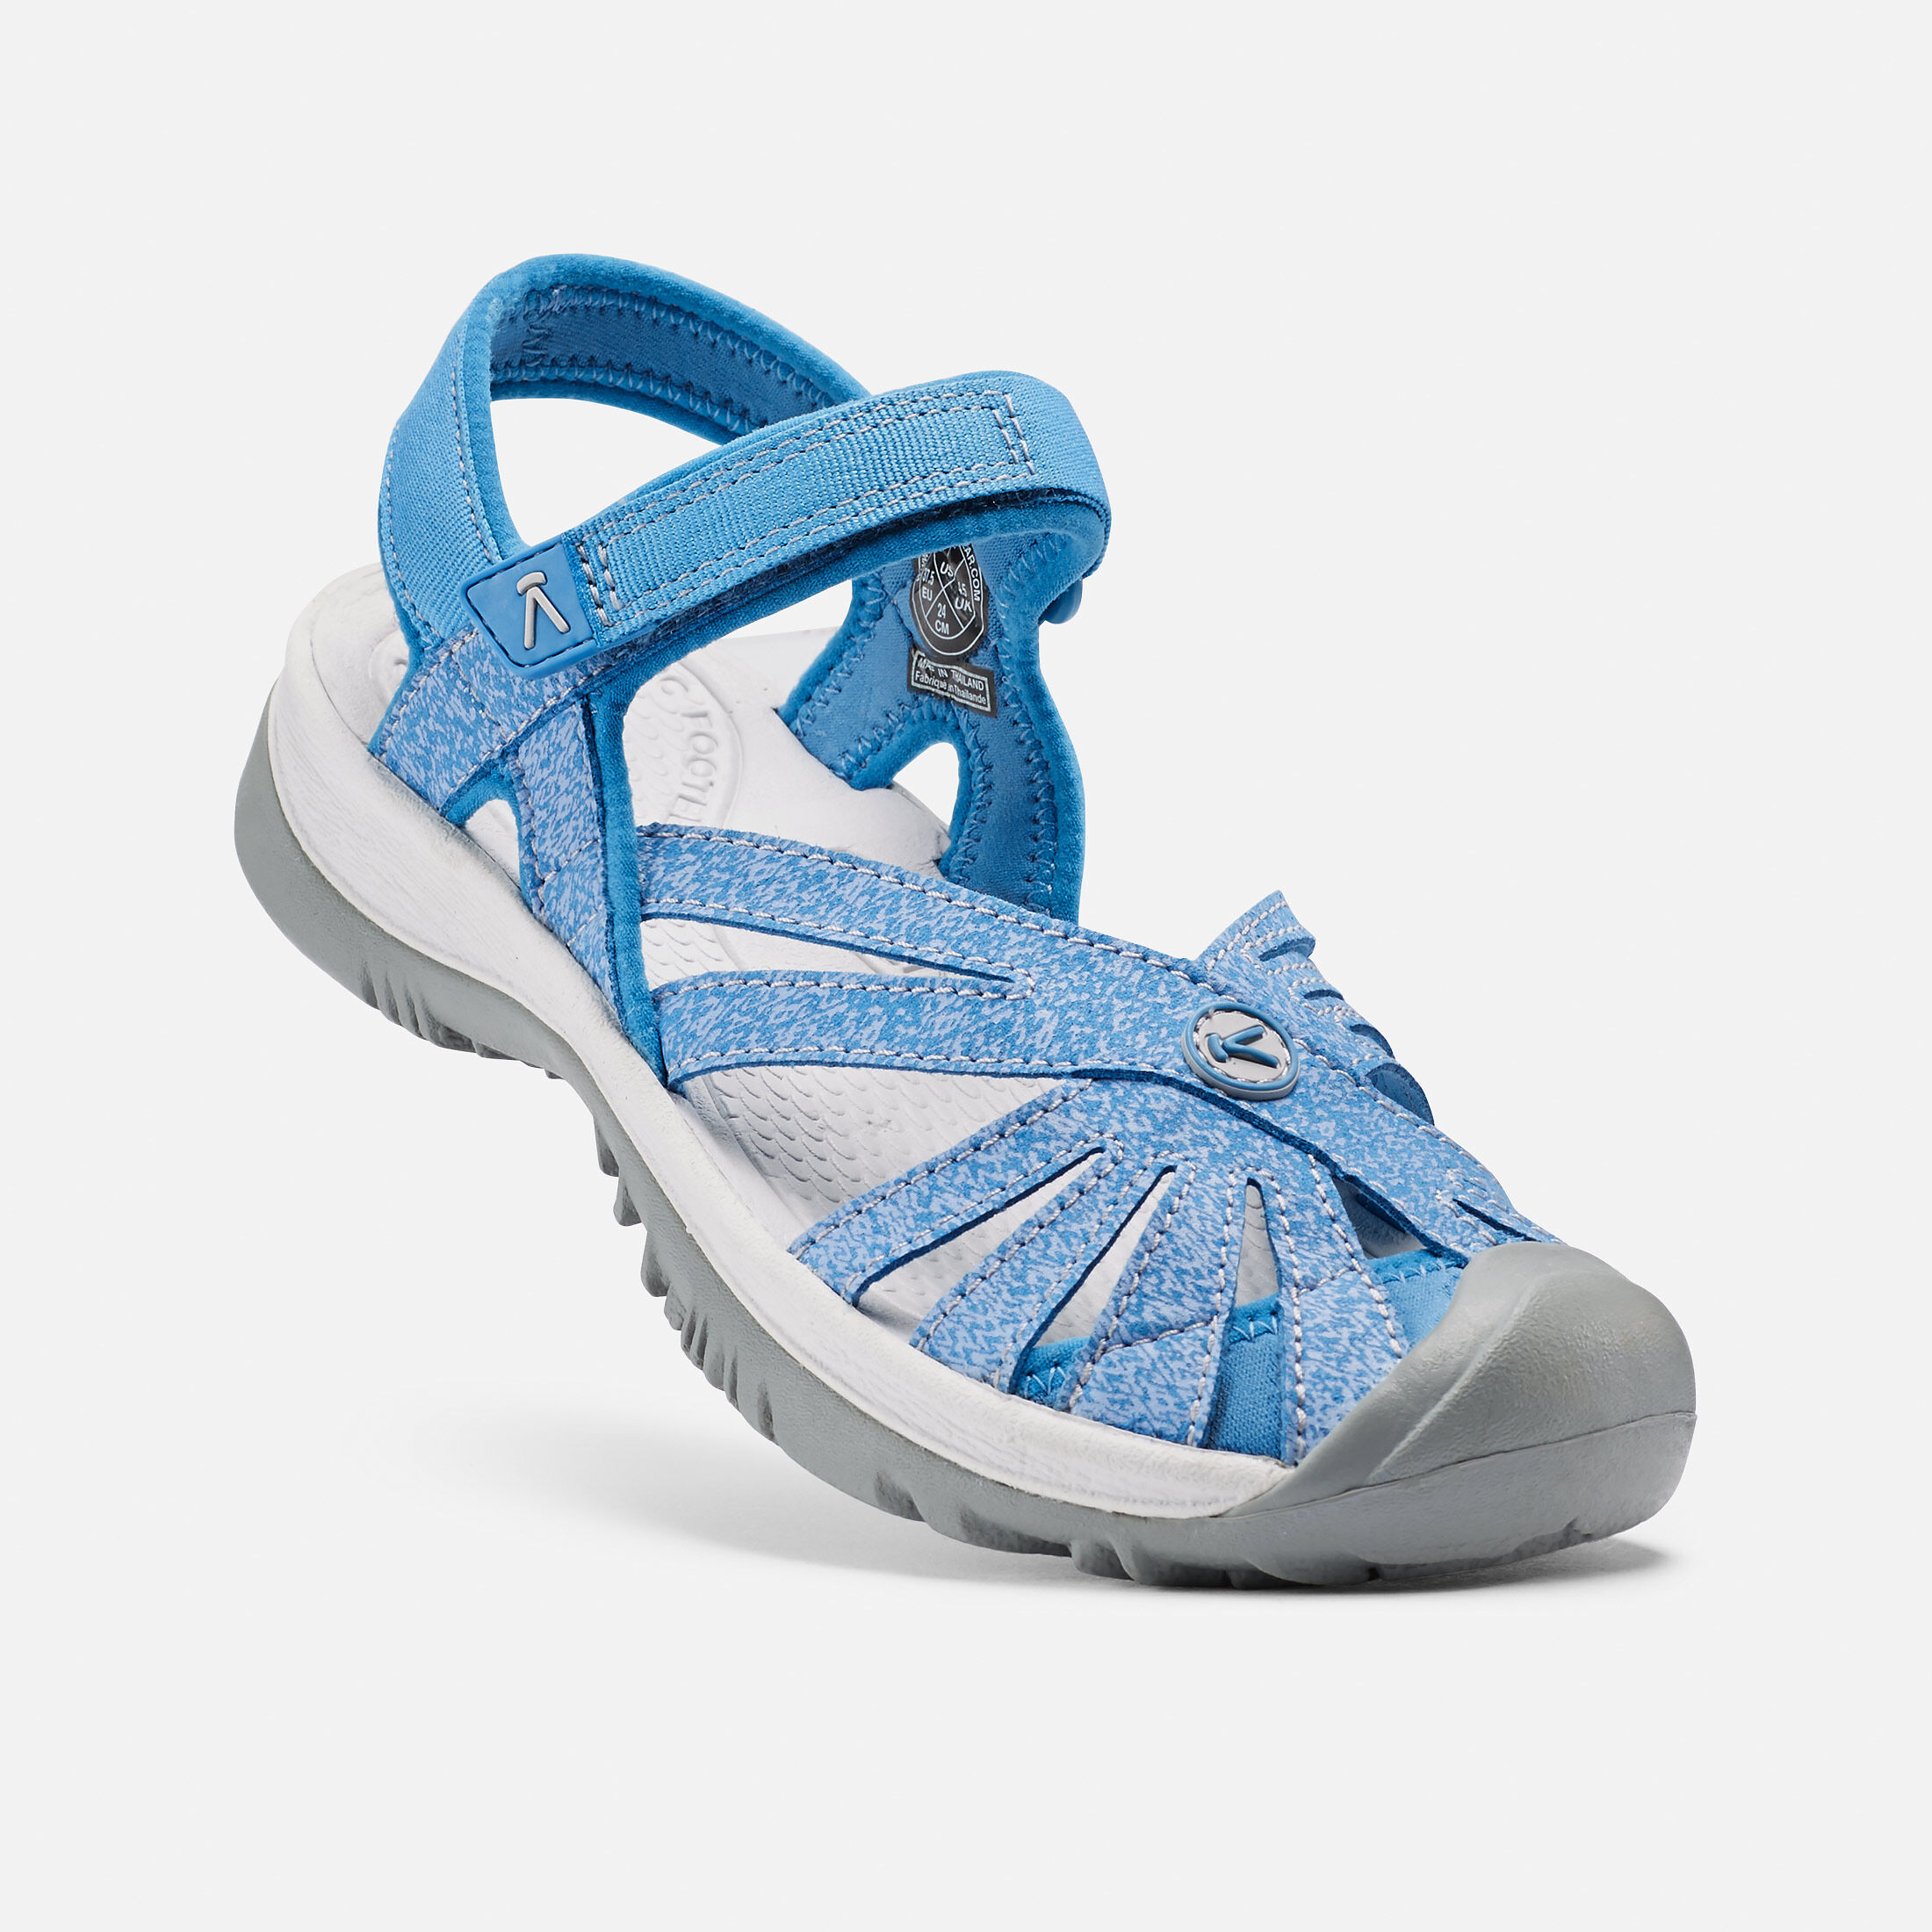 Women's Rose Sandal in Cendre BlueBlue Bell small view.